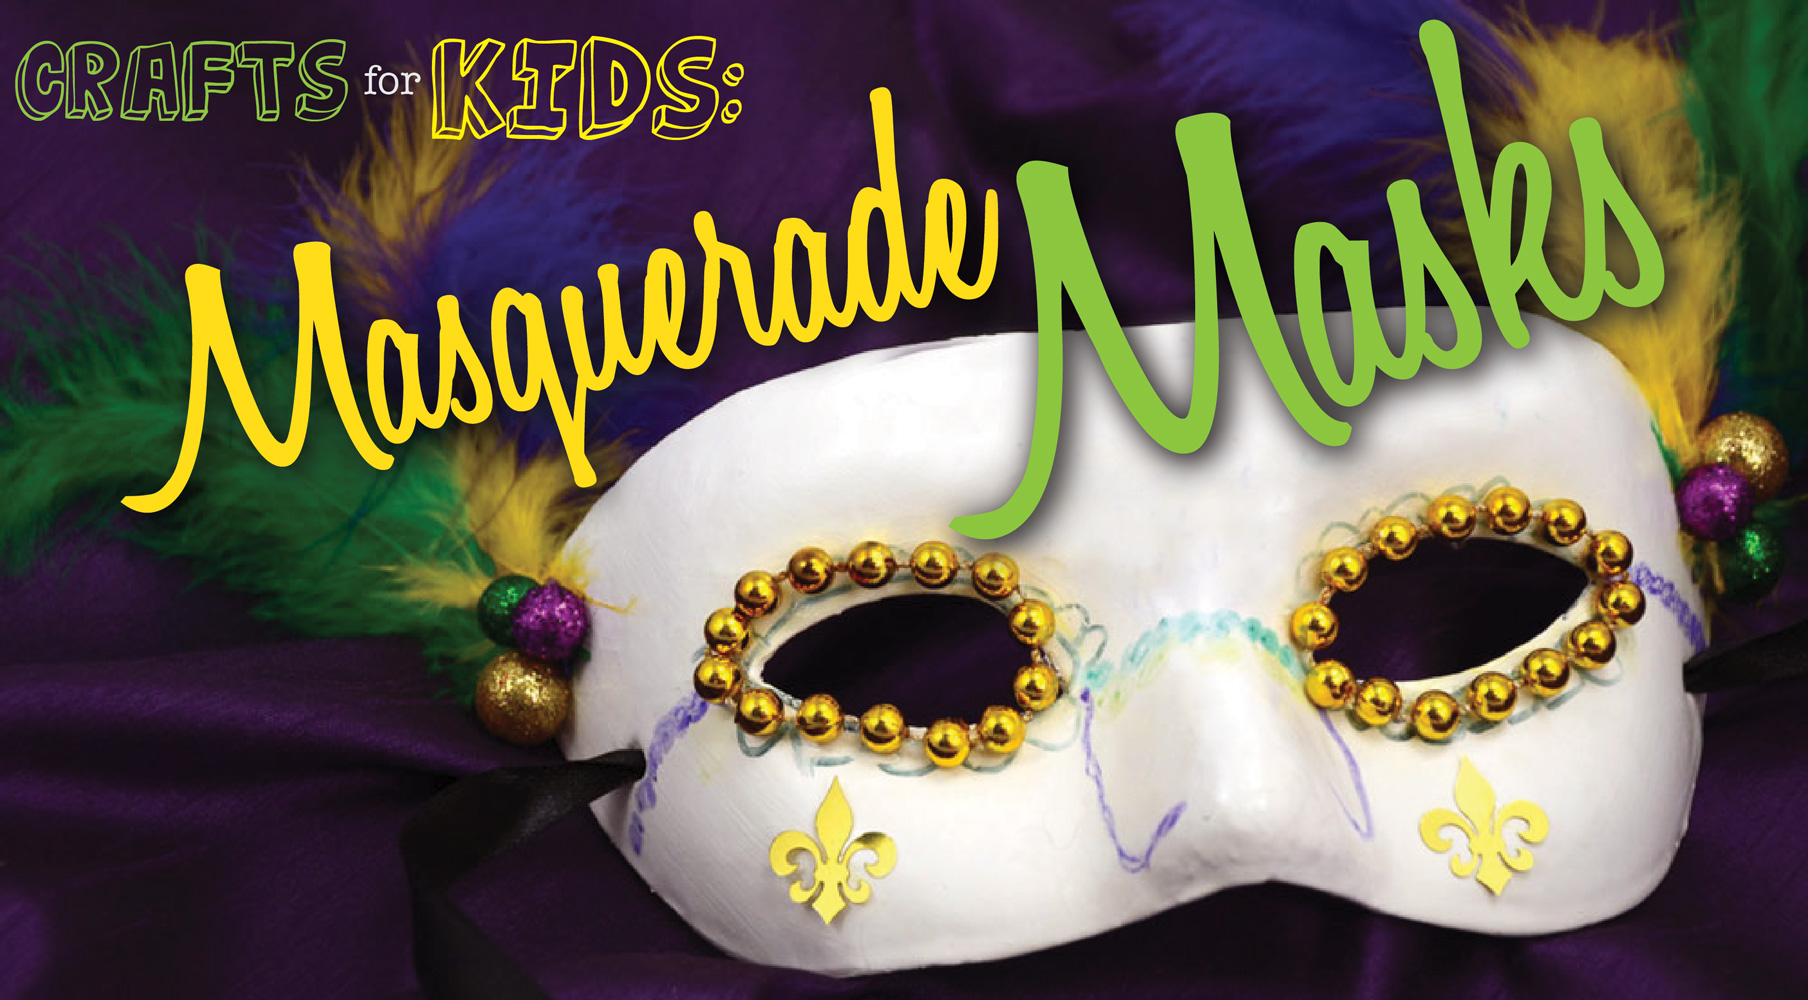 Crafts for Kids: Masquerade Masks